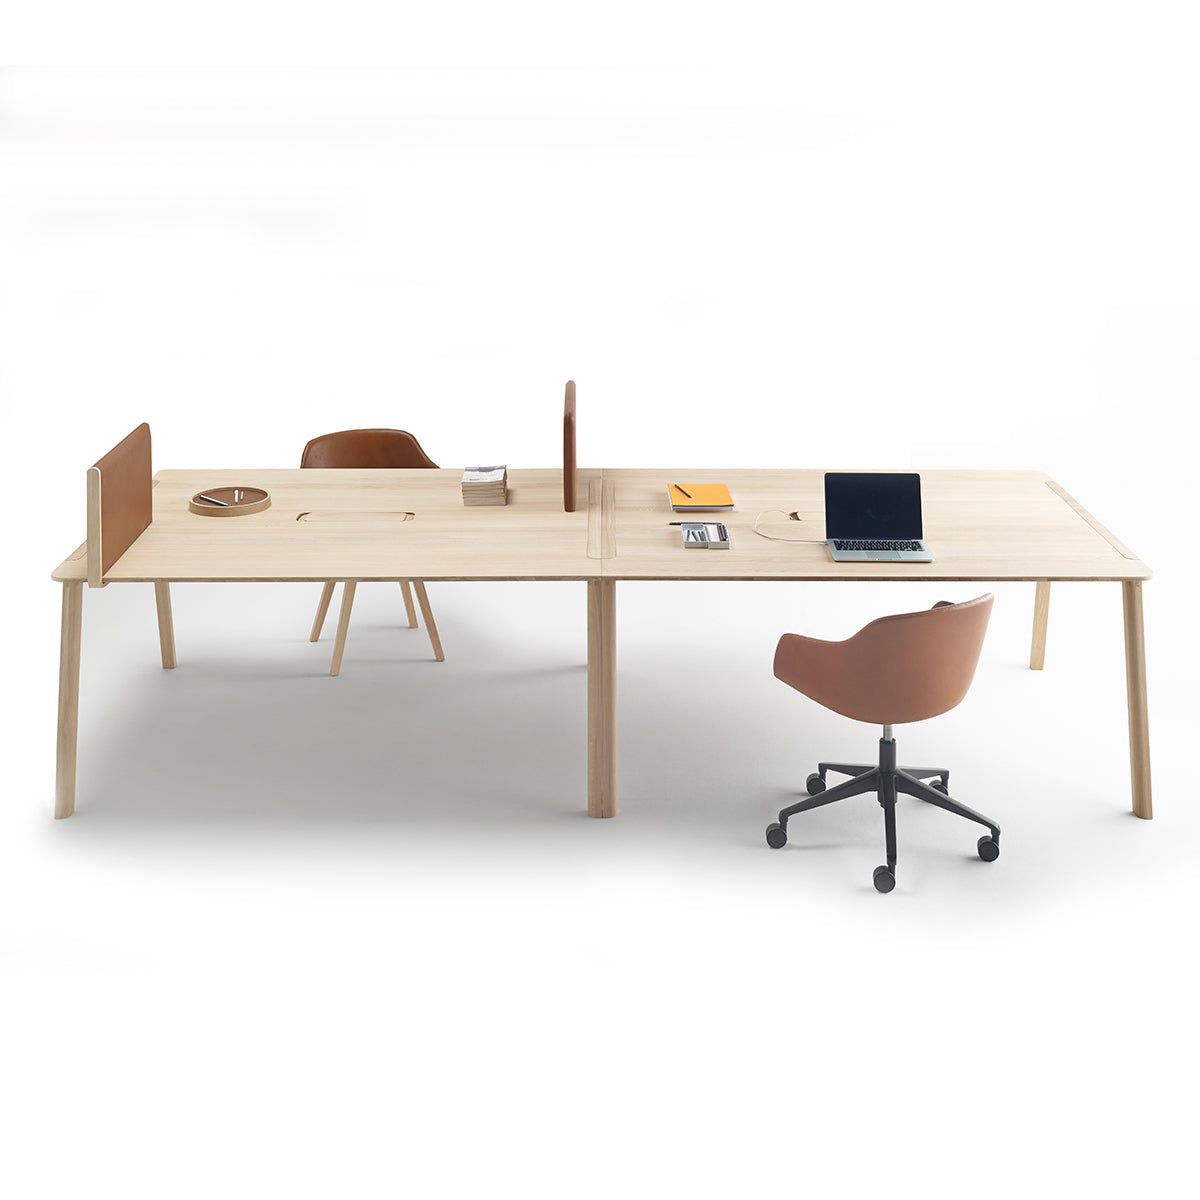 category shop new the archives global ionic office products desk desks